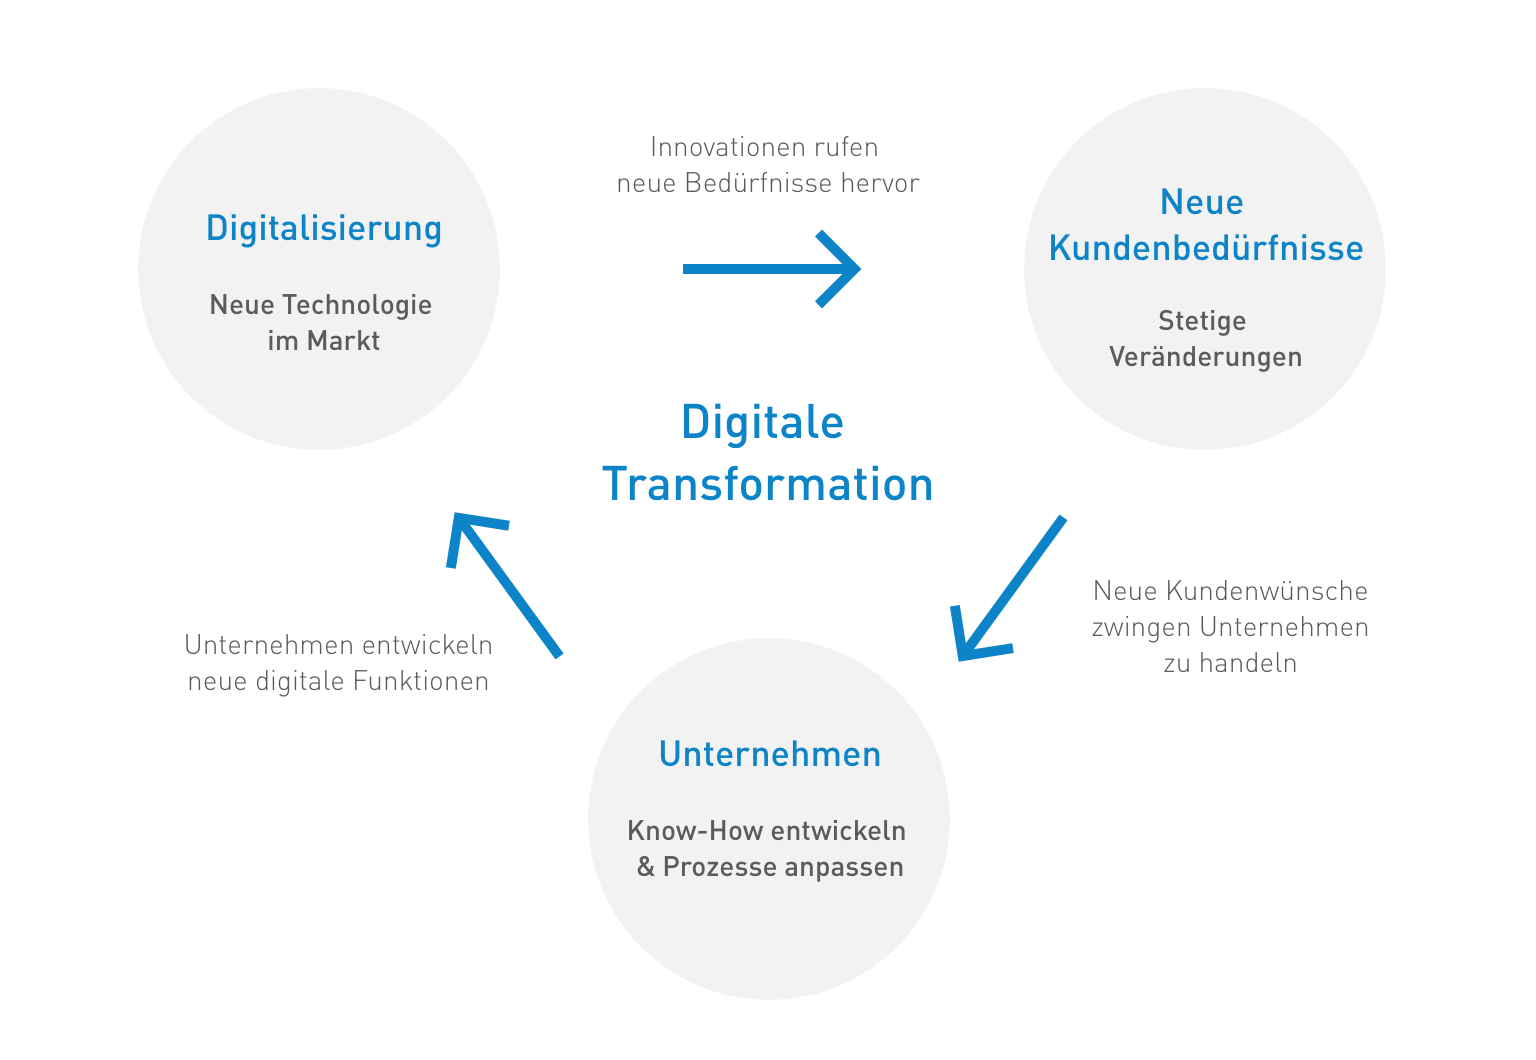 Digitale Transformation: Kreislauf